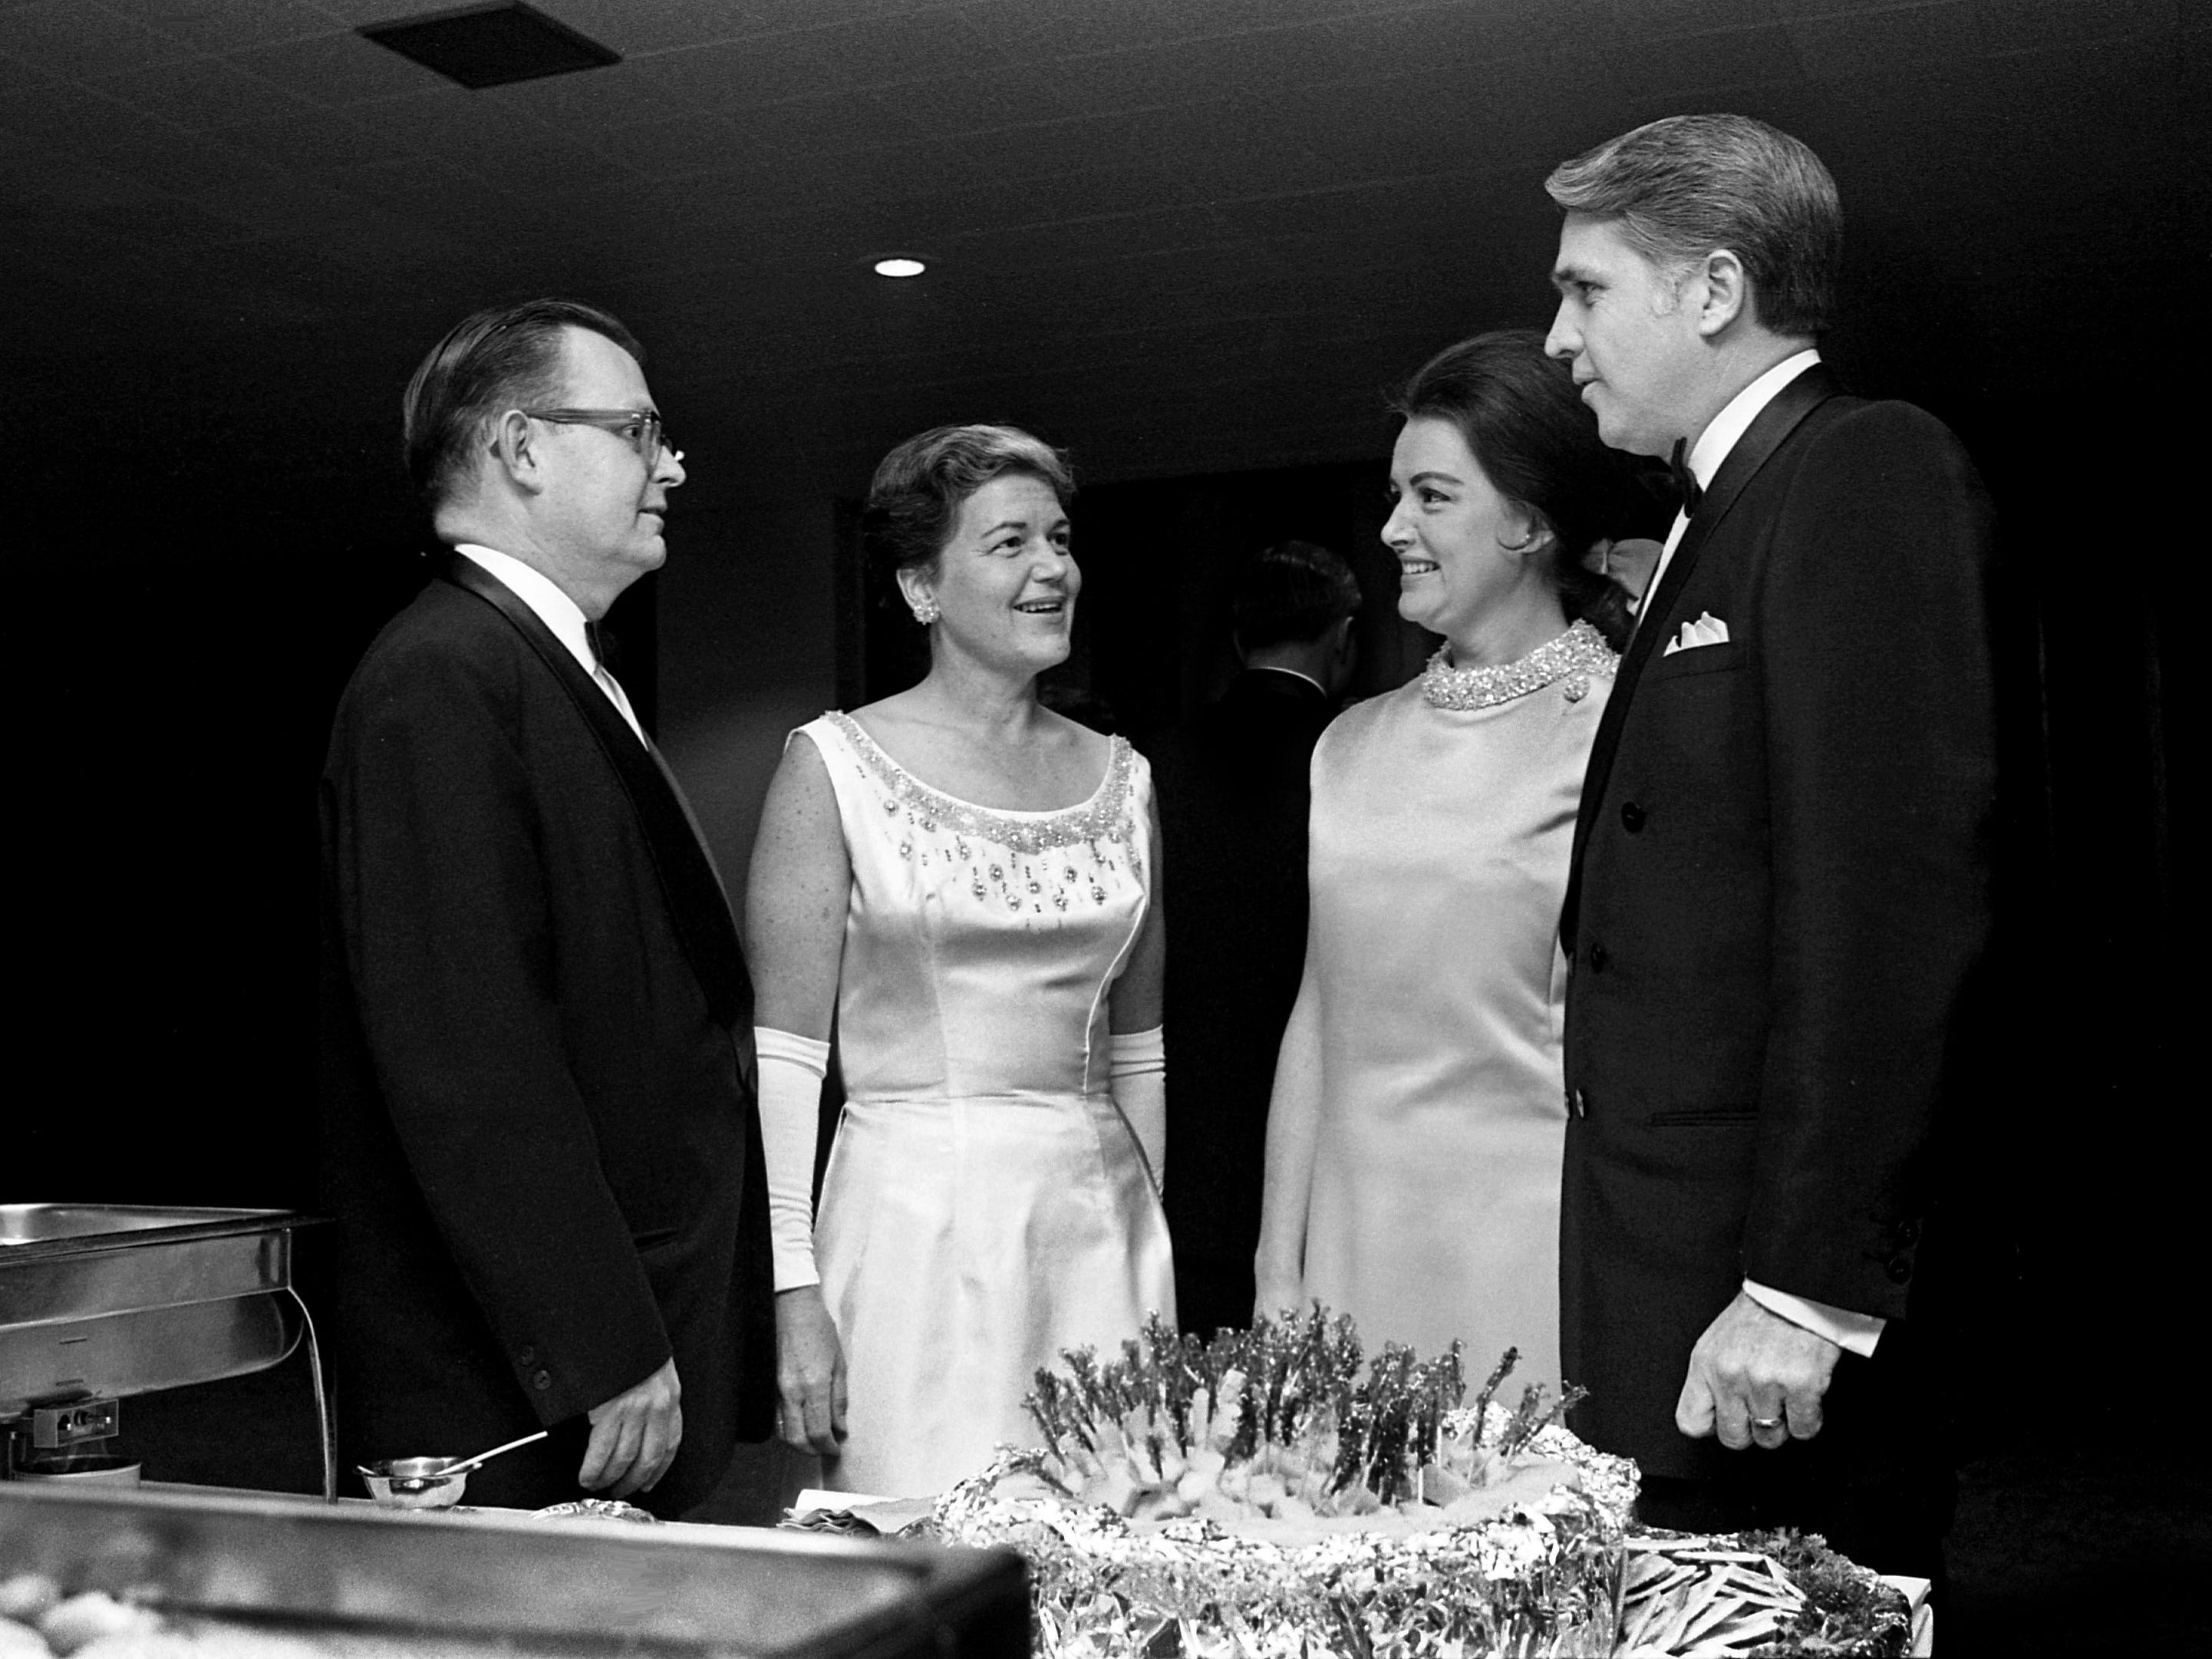 Robert Cooney, left, Miss Idanelle McMurry and Mrs. and Mr. E.J. Preston share a moment during the new Sheraton-Nashville's Opening Ball on Dec. 13, 1968.